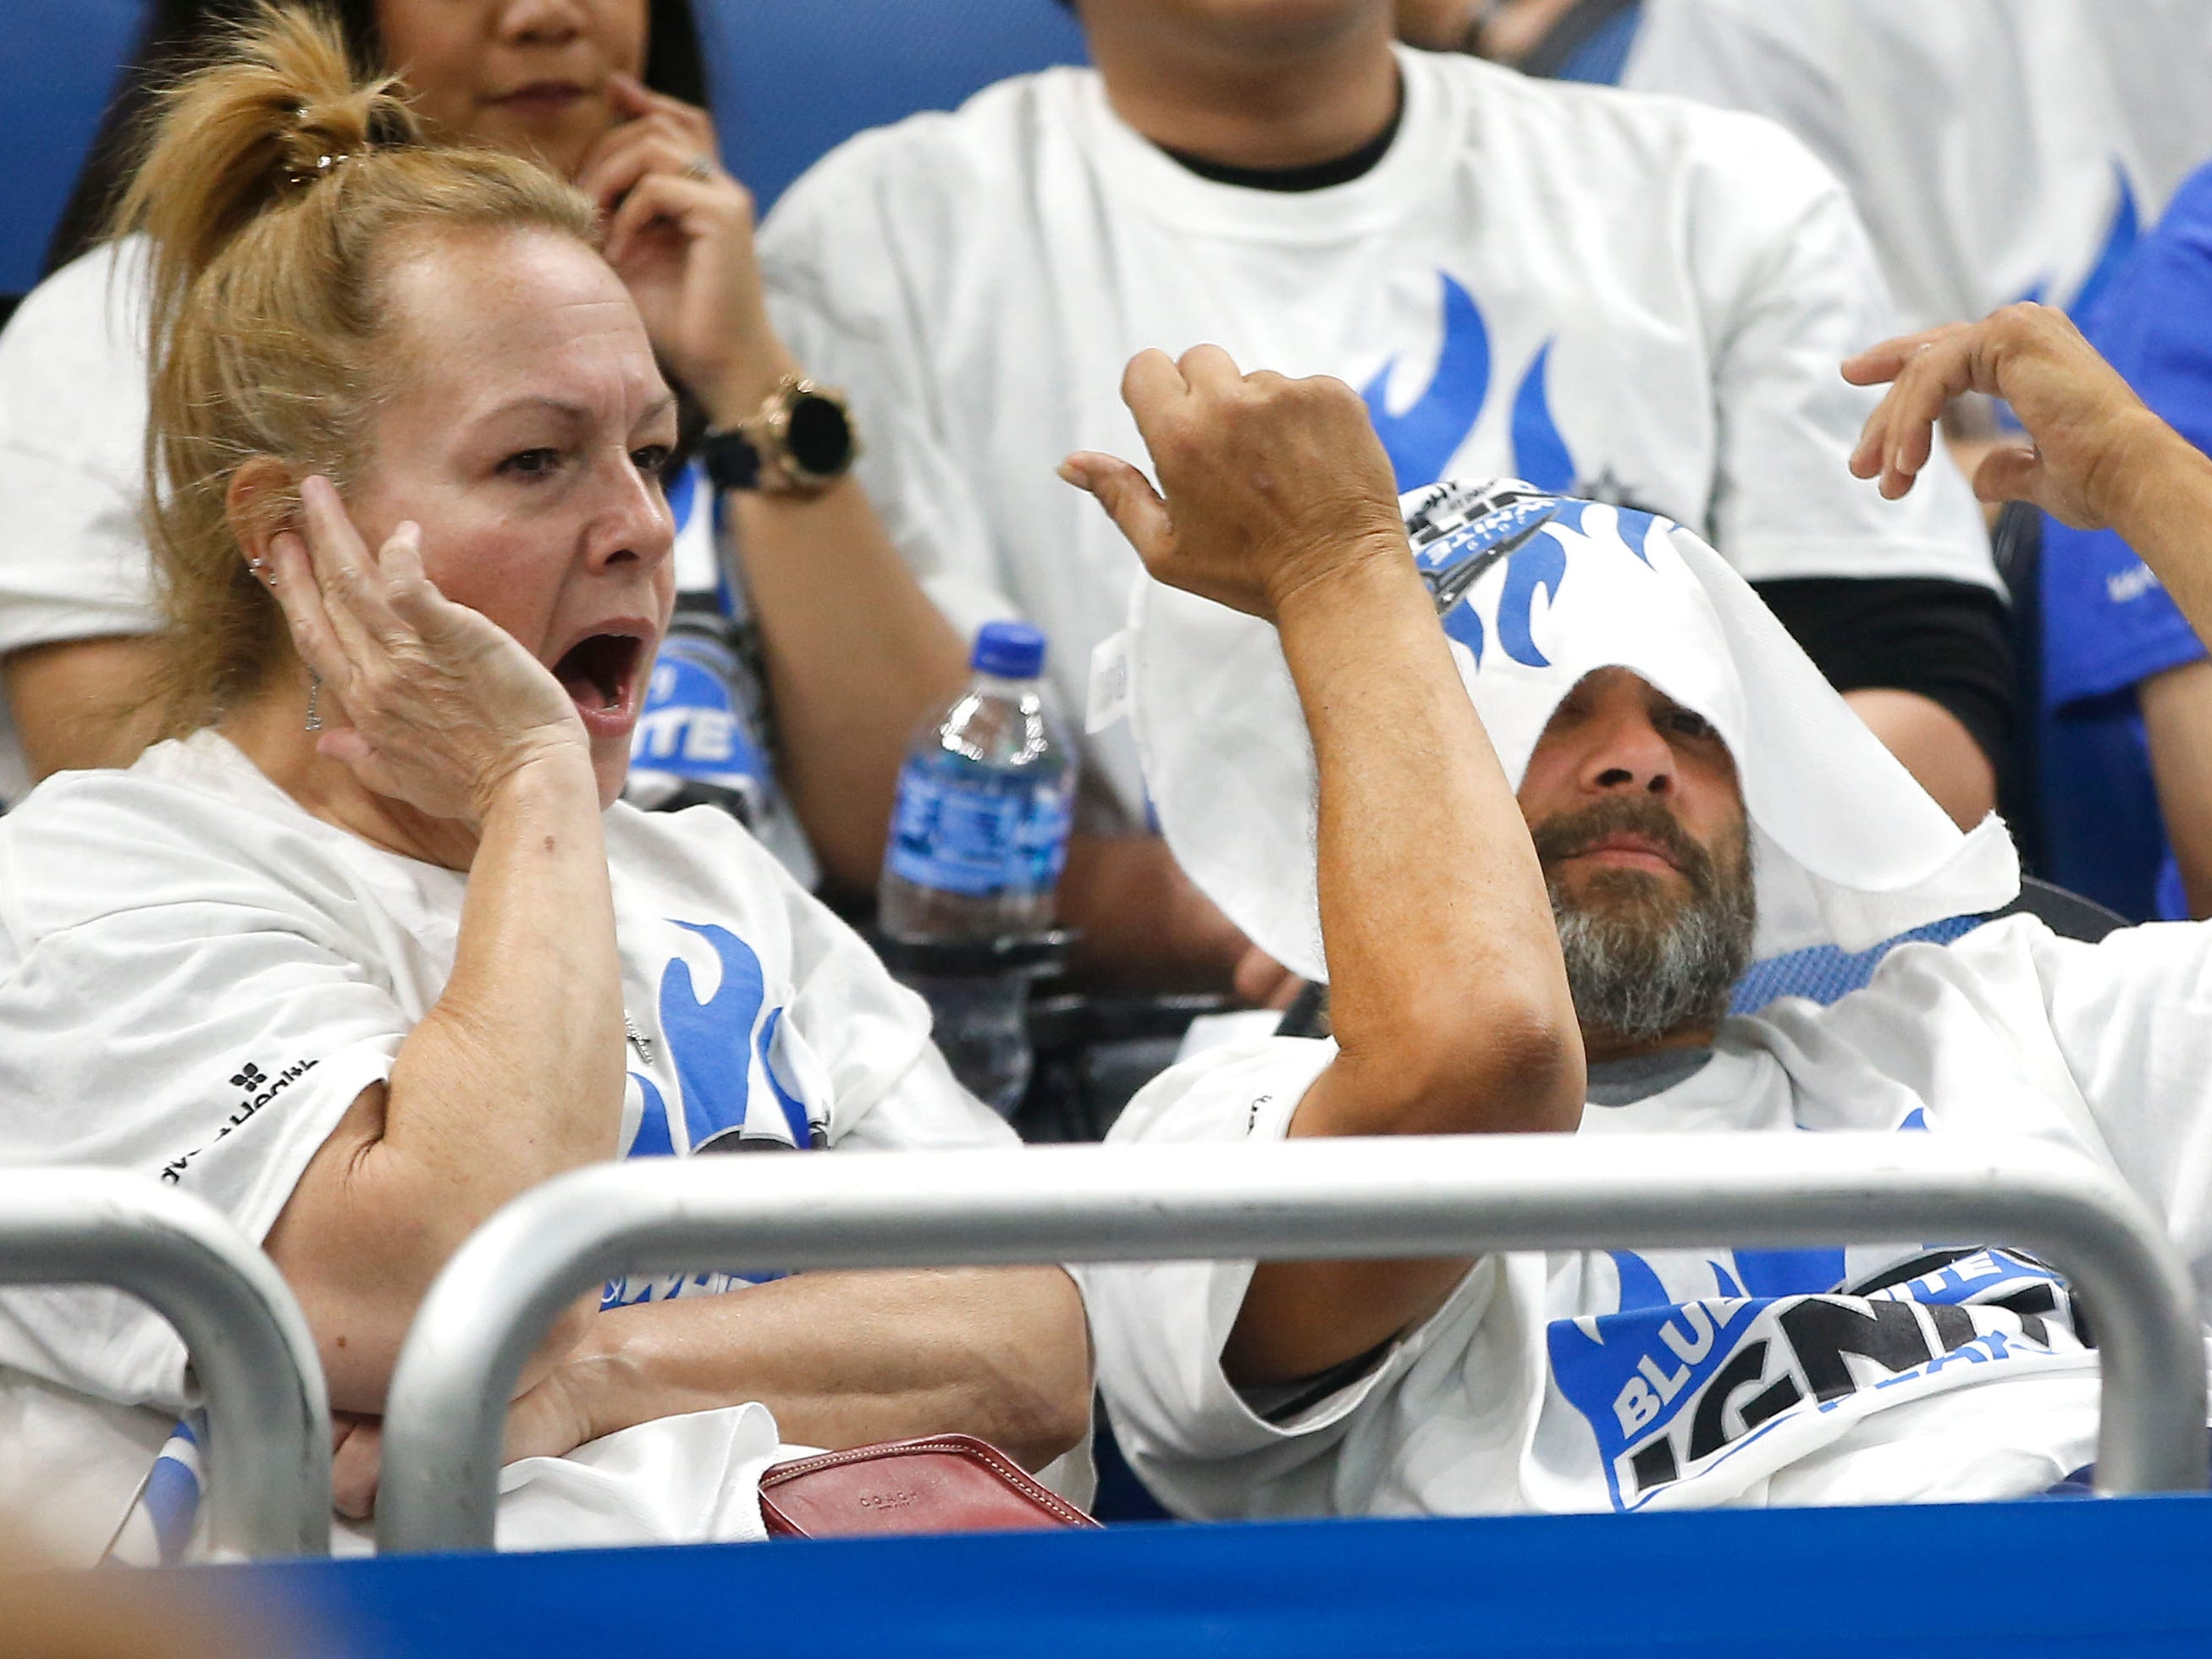 April 21: Fans react as the Magic lose to the Raptors in Game 4.